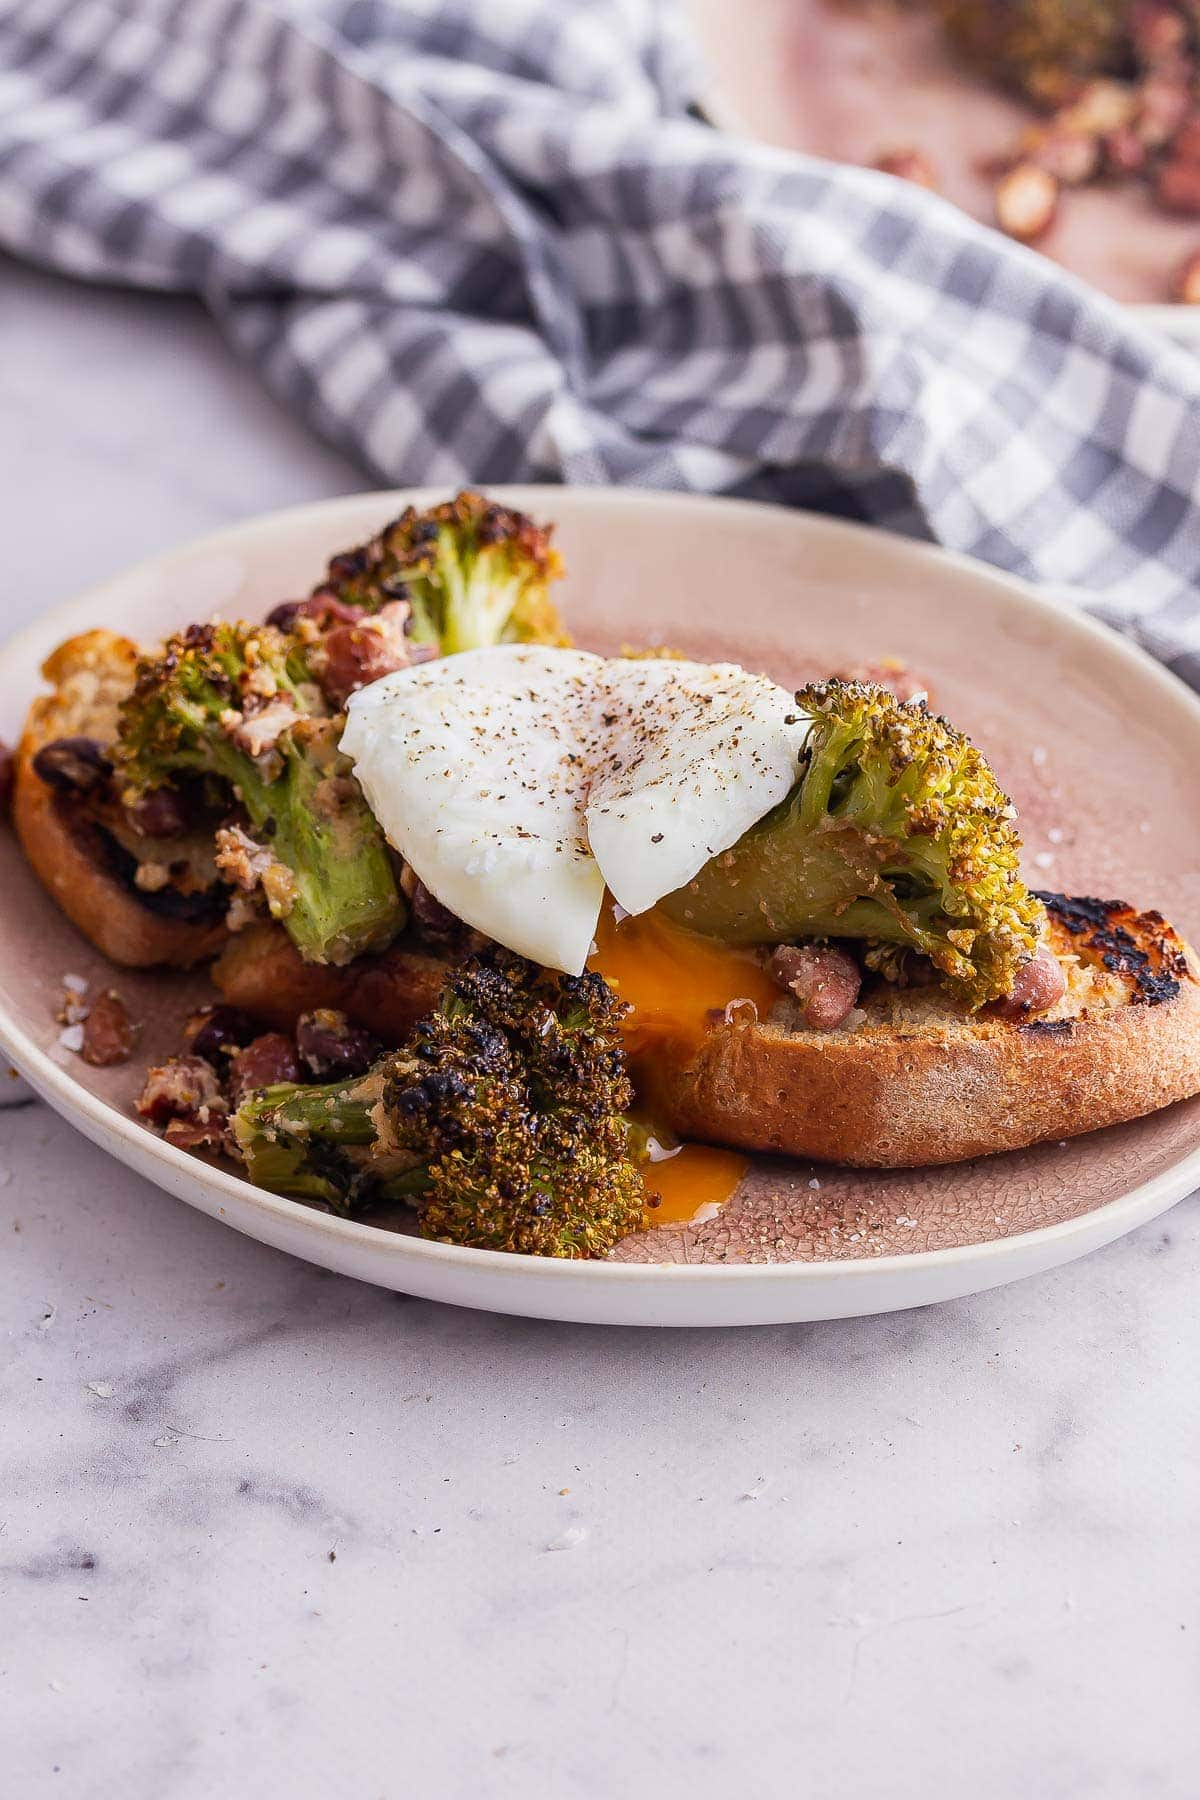 Pink plate of miso broccoli with a runny poached egg on a marble surface